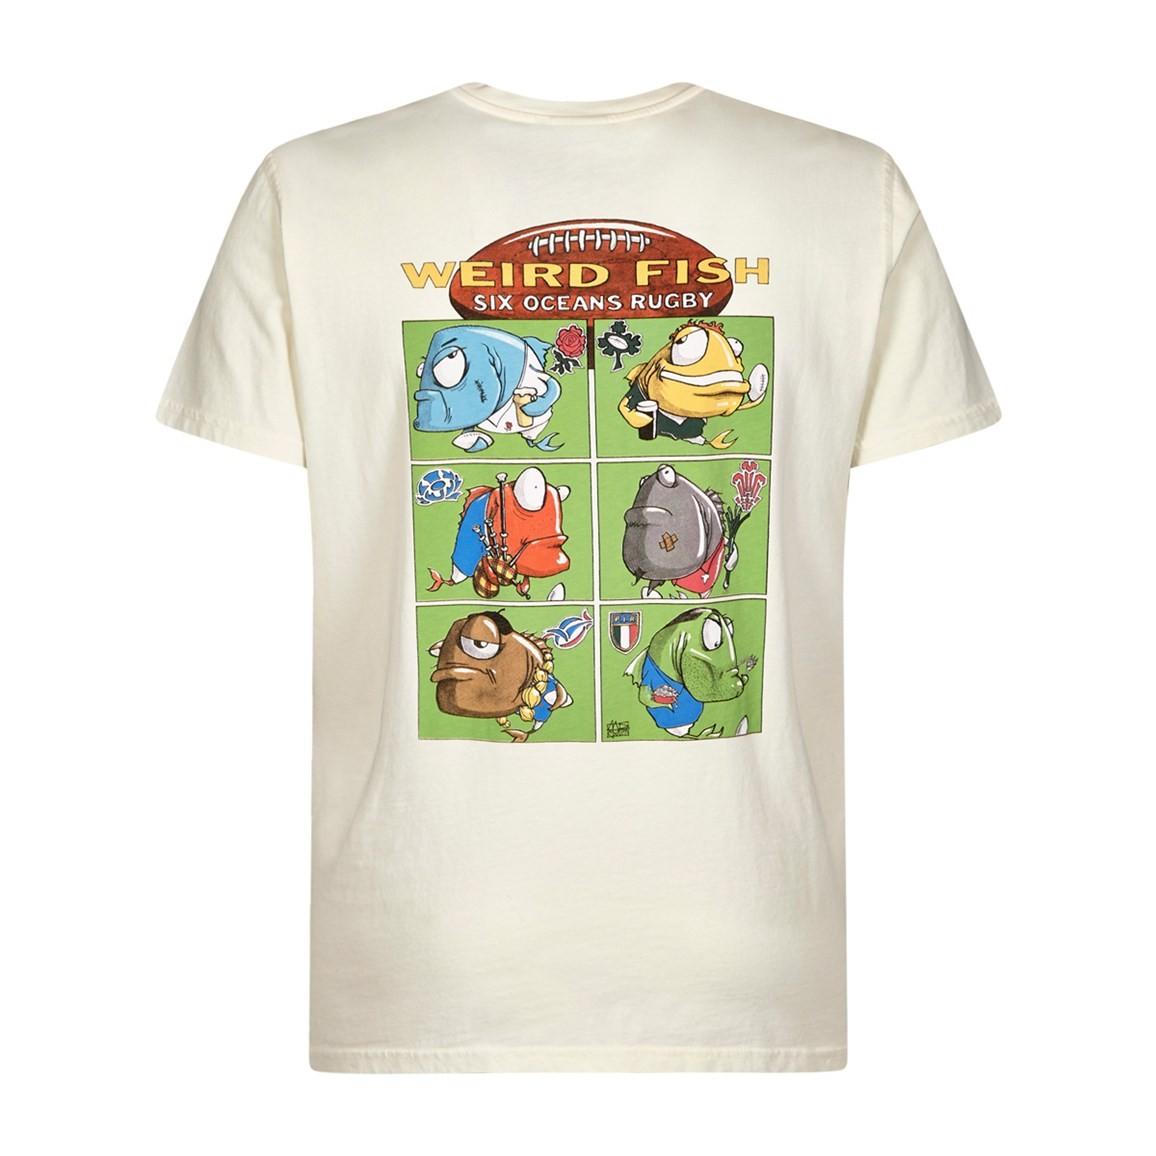 Weird Fish Six Oceans Cotton Printed Artist T-Shirt White